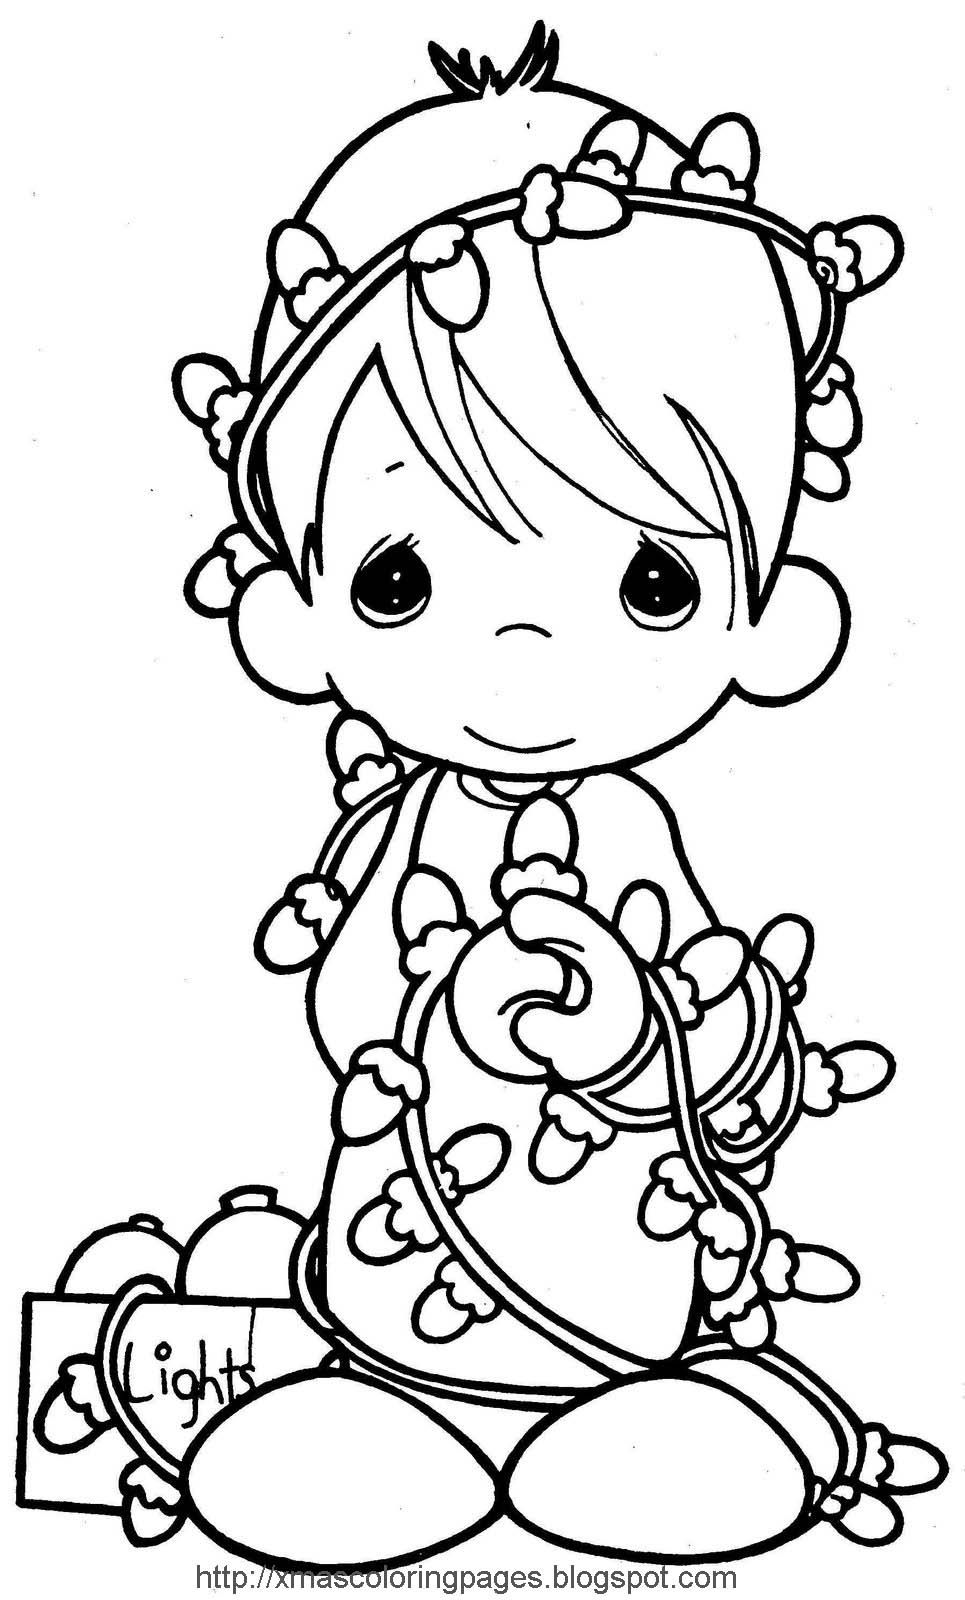 Site with hundreds of free, printable Xmas coloring pages ...